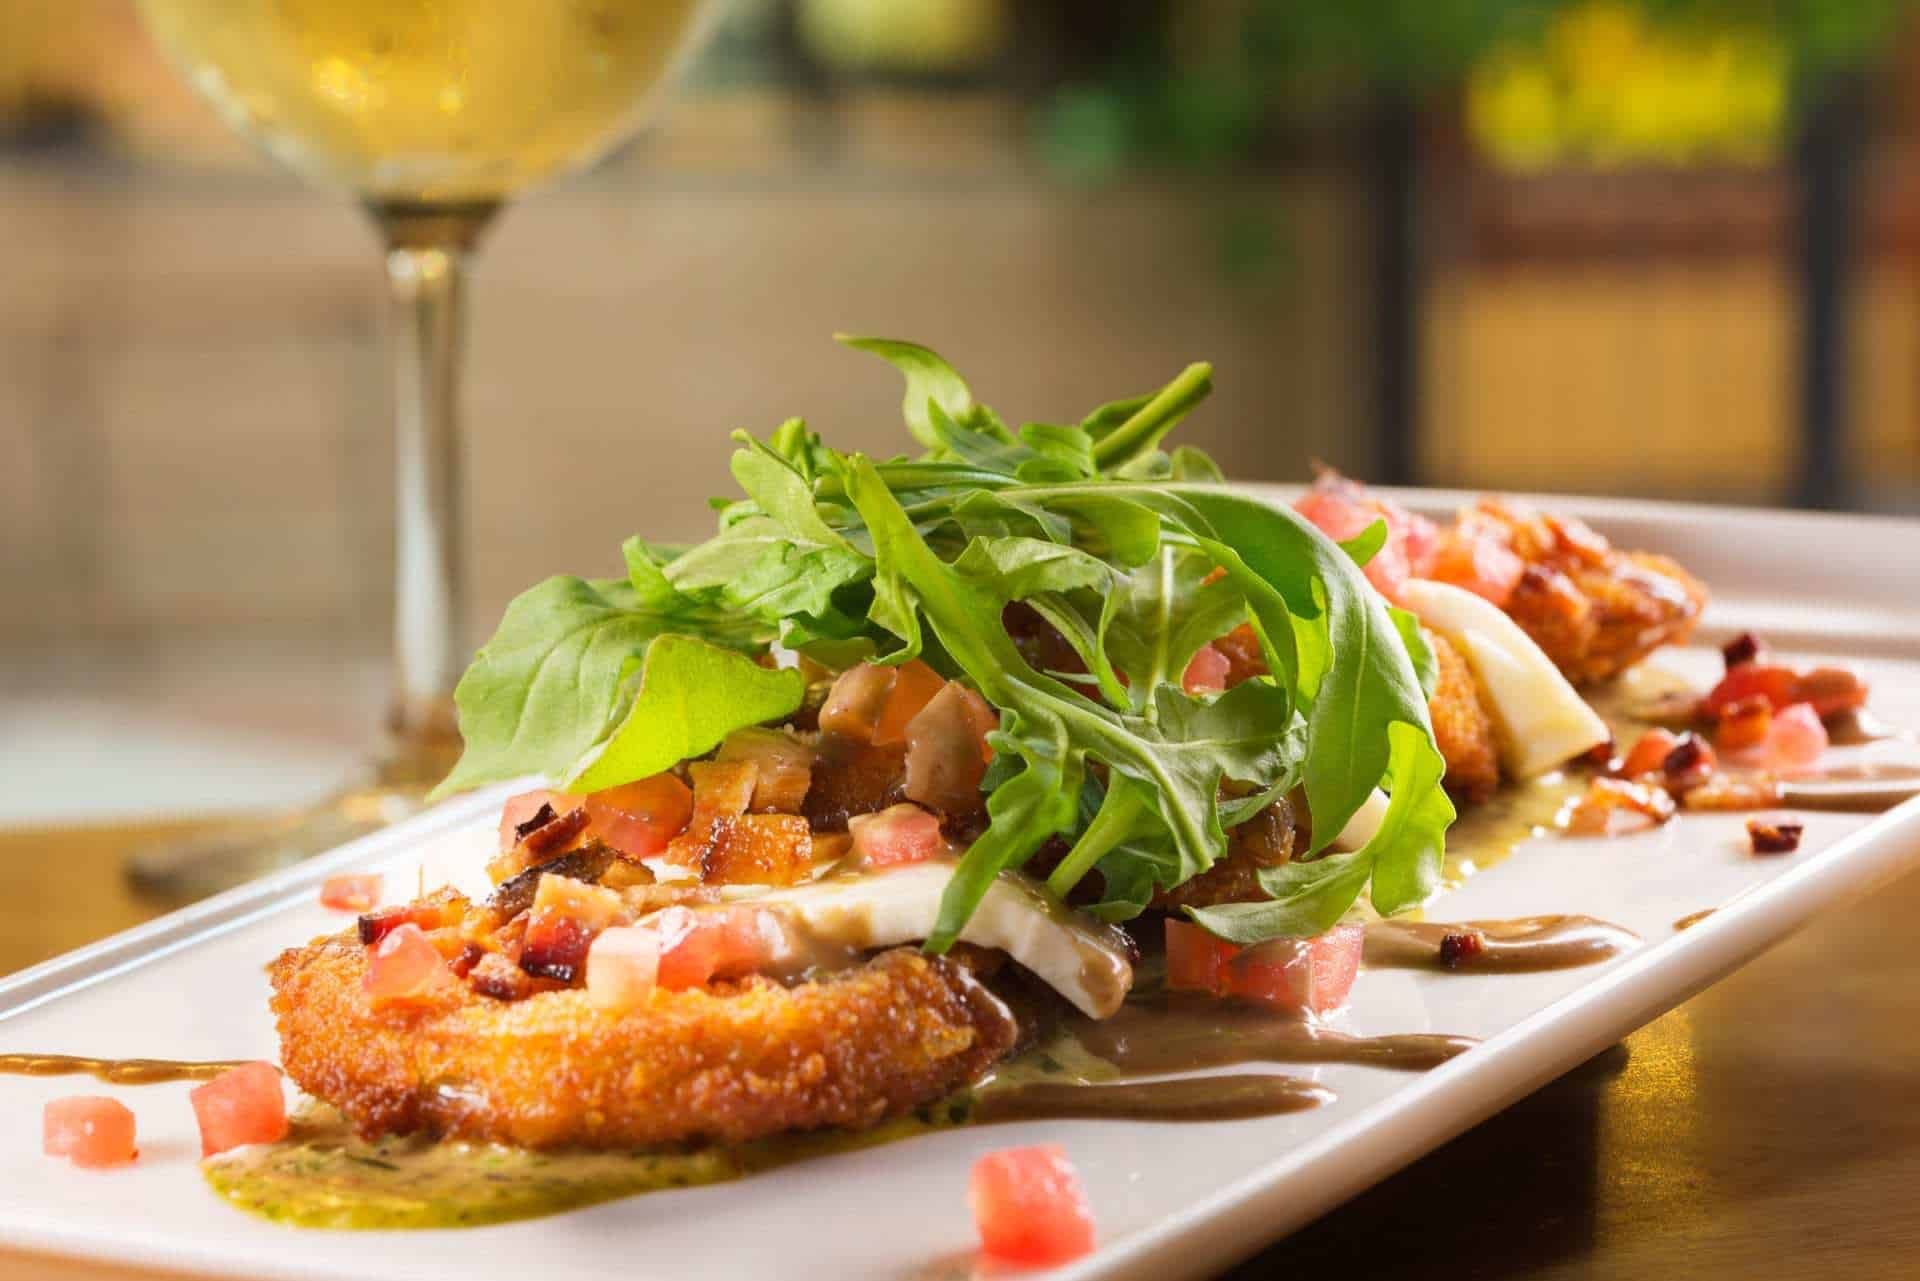 fried green tomatoes with mozzarella, tomatoes, and arugula on a plate